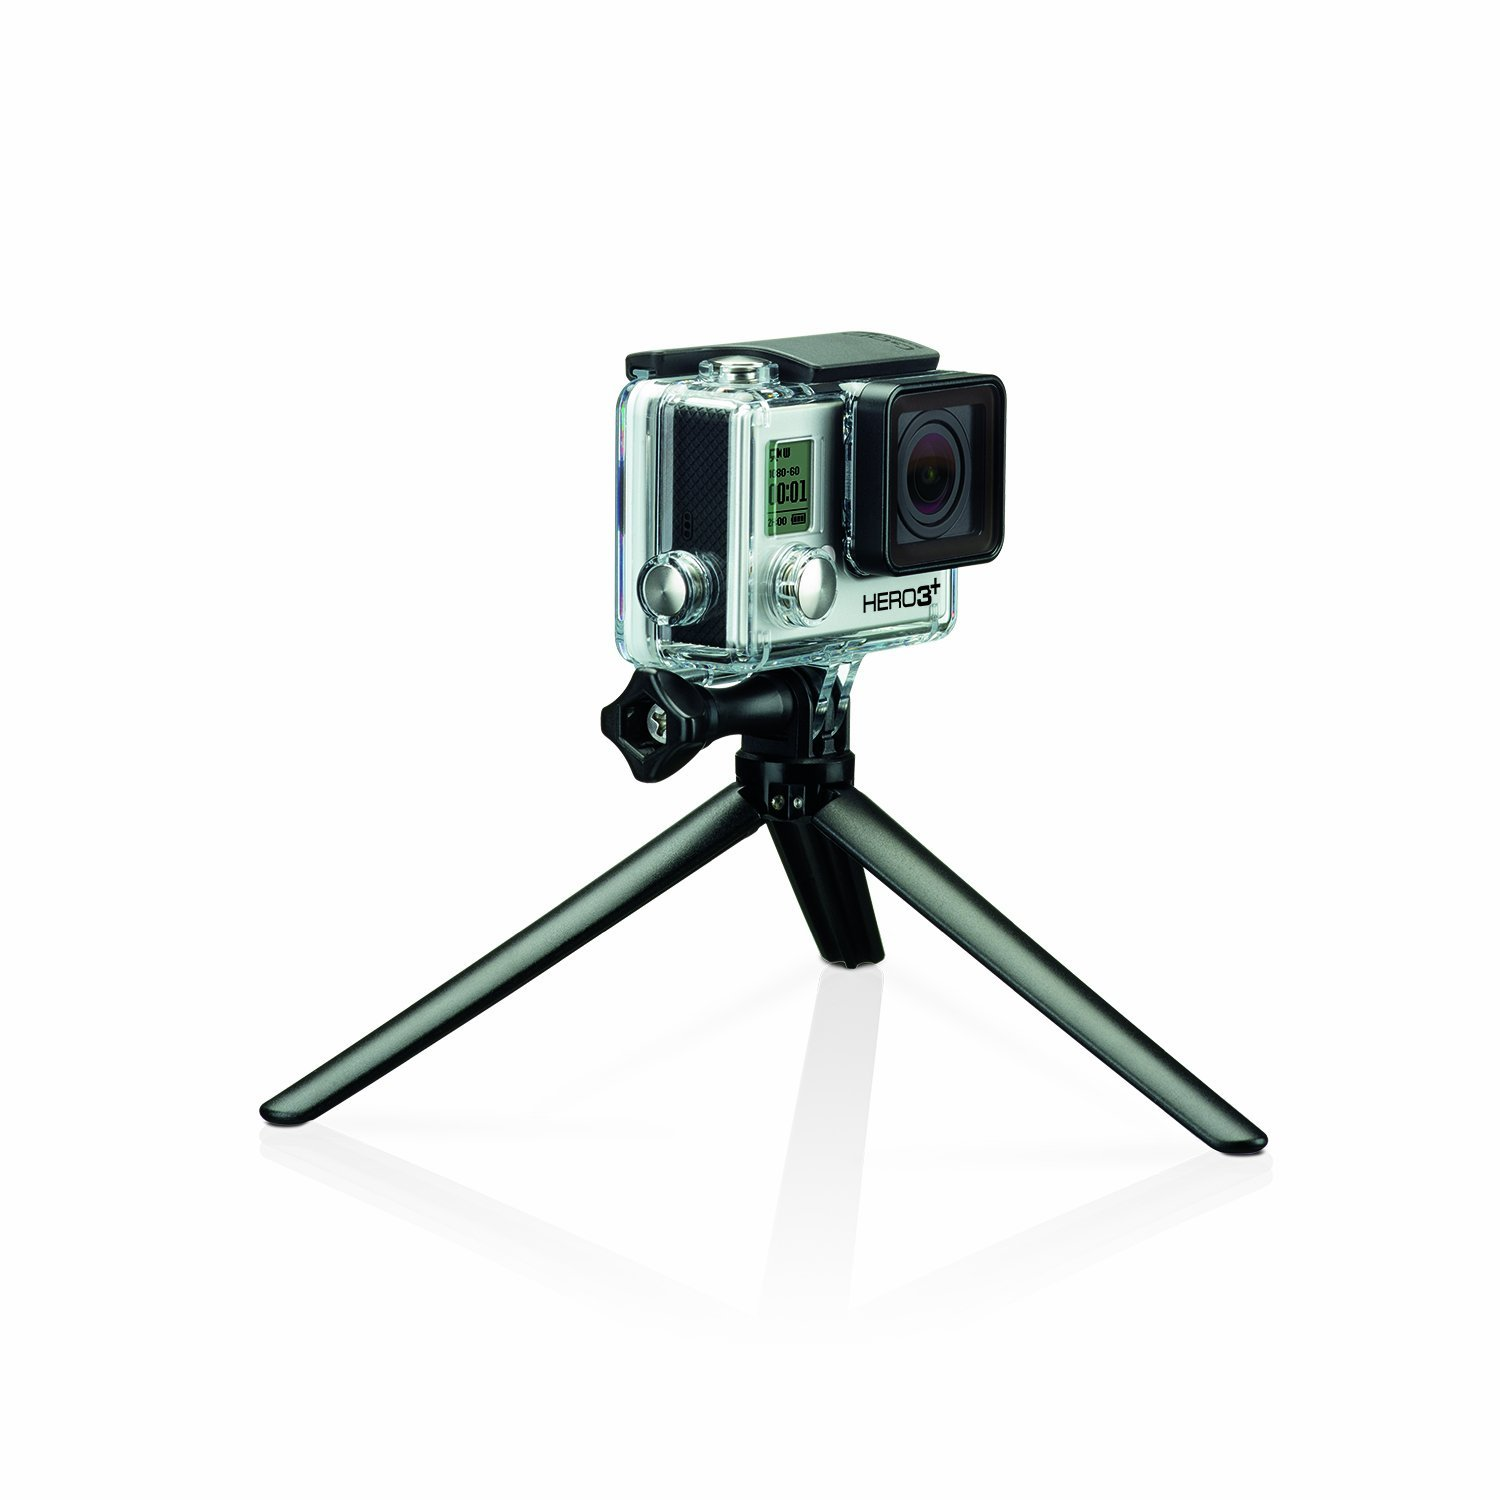 GoPro 3-Way Grip, Tripod, Arm